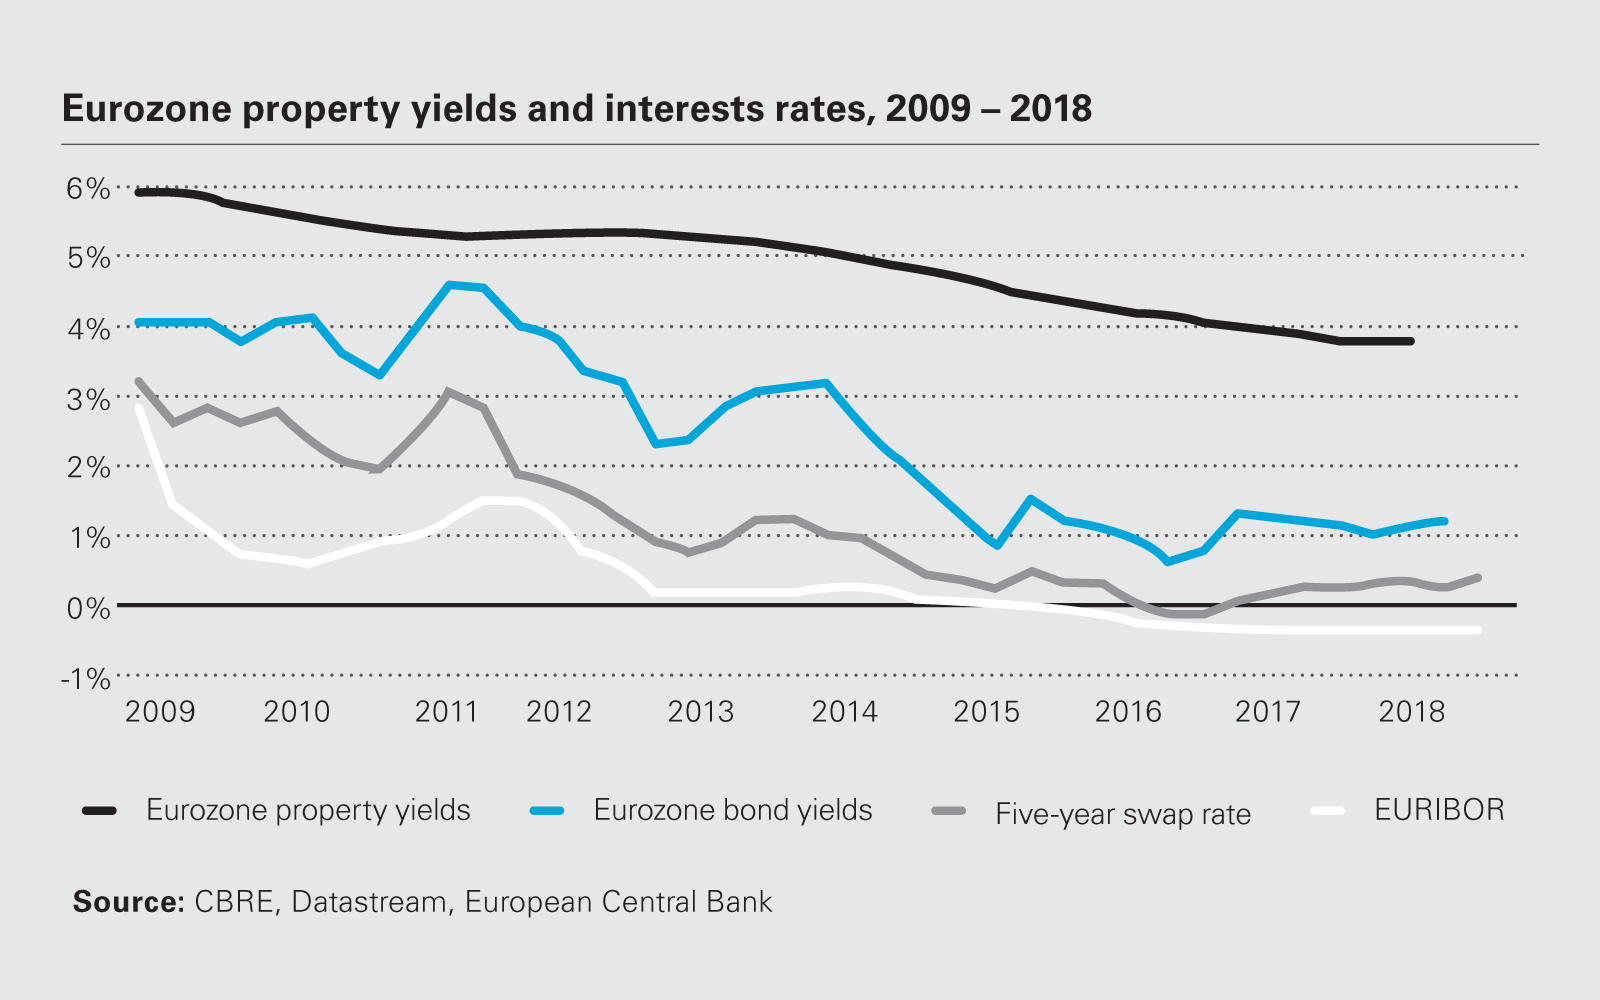 Eurozone property yields and interests rates, 2009-2018